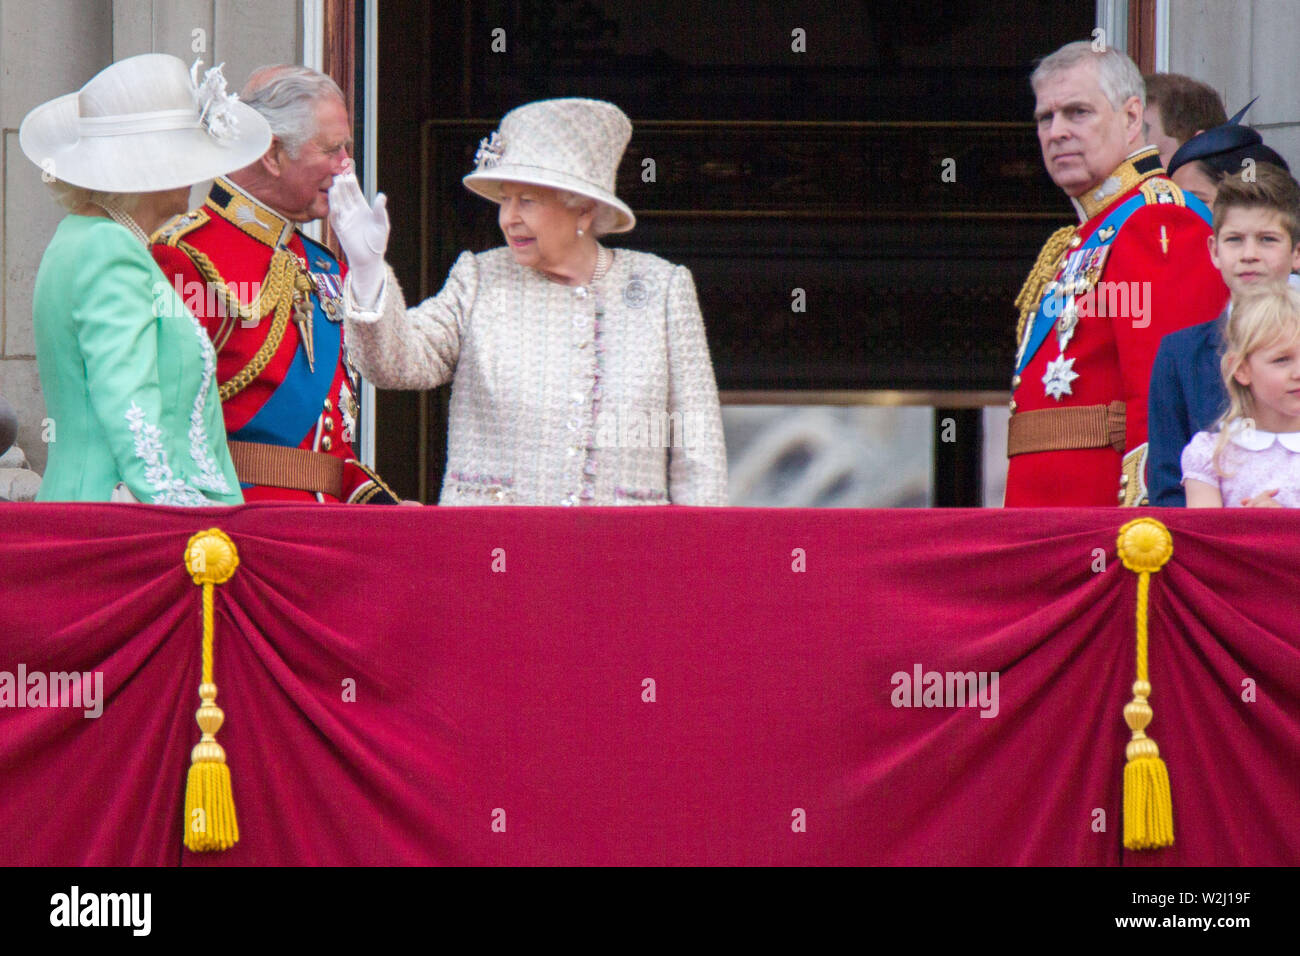 The official birthday of the British Sovereign has been marked by The Trooping of the Colour for more than 260 years. The royal spectacle sees over 1400 parading soldiers, 200 horses and 400 musicians take part in the annual event which is followed by an RAF fly-past over Buckingham Palace. Featuring: Camilla, Duchess of Cornwall, Charles, Prince of Wales, HM Queen Elizabeth II, Prince Andrew Duke of York Where: London, United Kingdom When: 08 Jun 2019 Credit: Wheatley/WENN - Stock Image